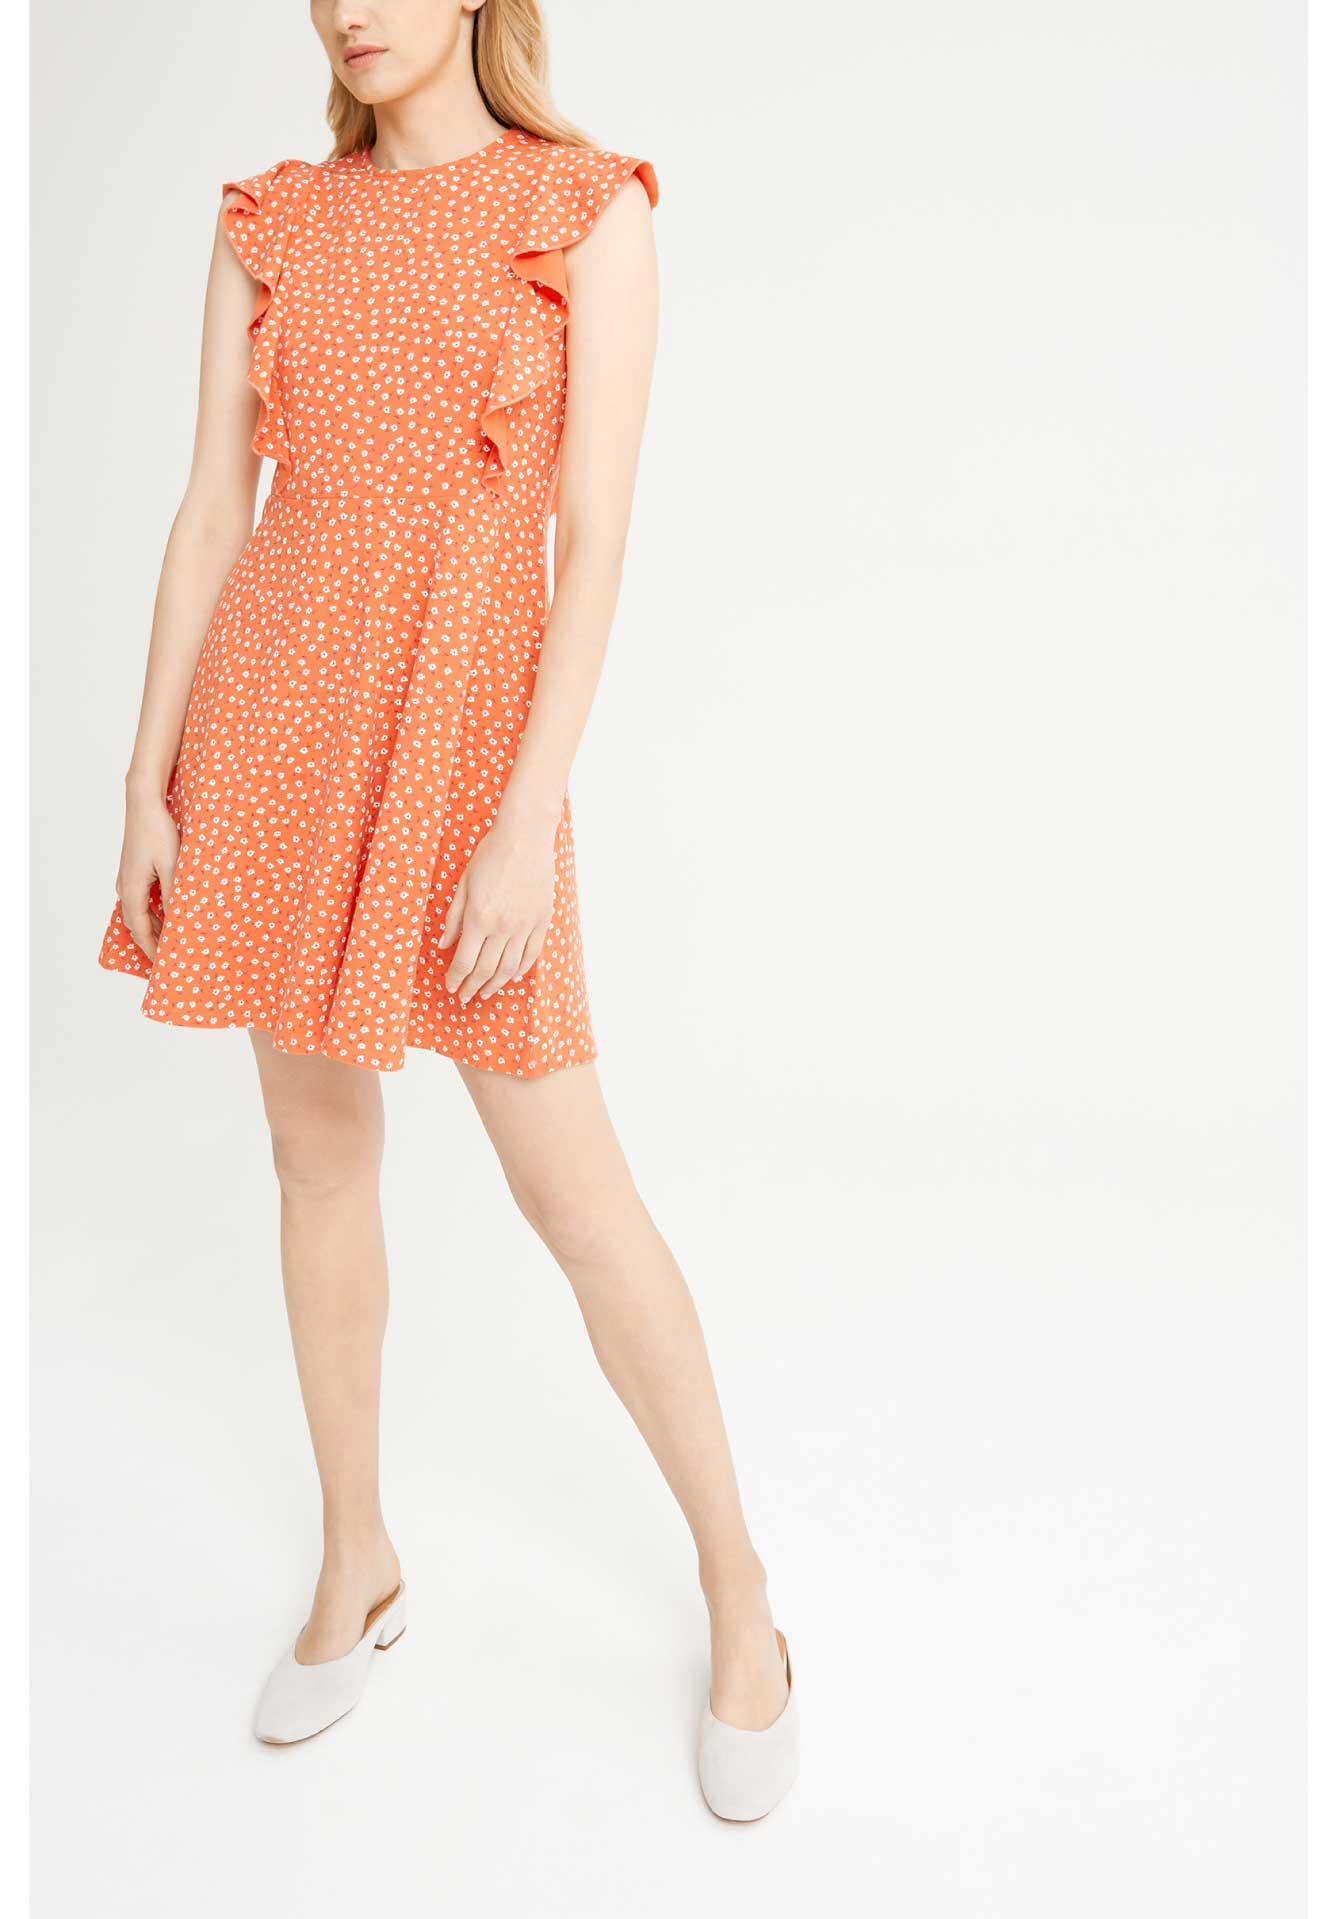 Lulu Floral Dress - Red-Dress-Sancho's Dress